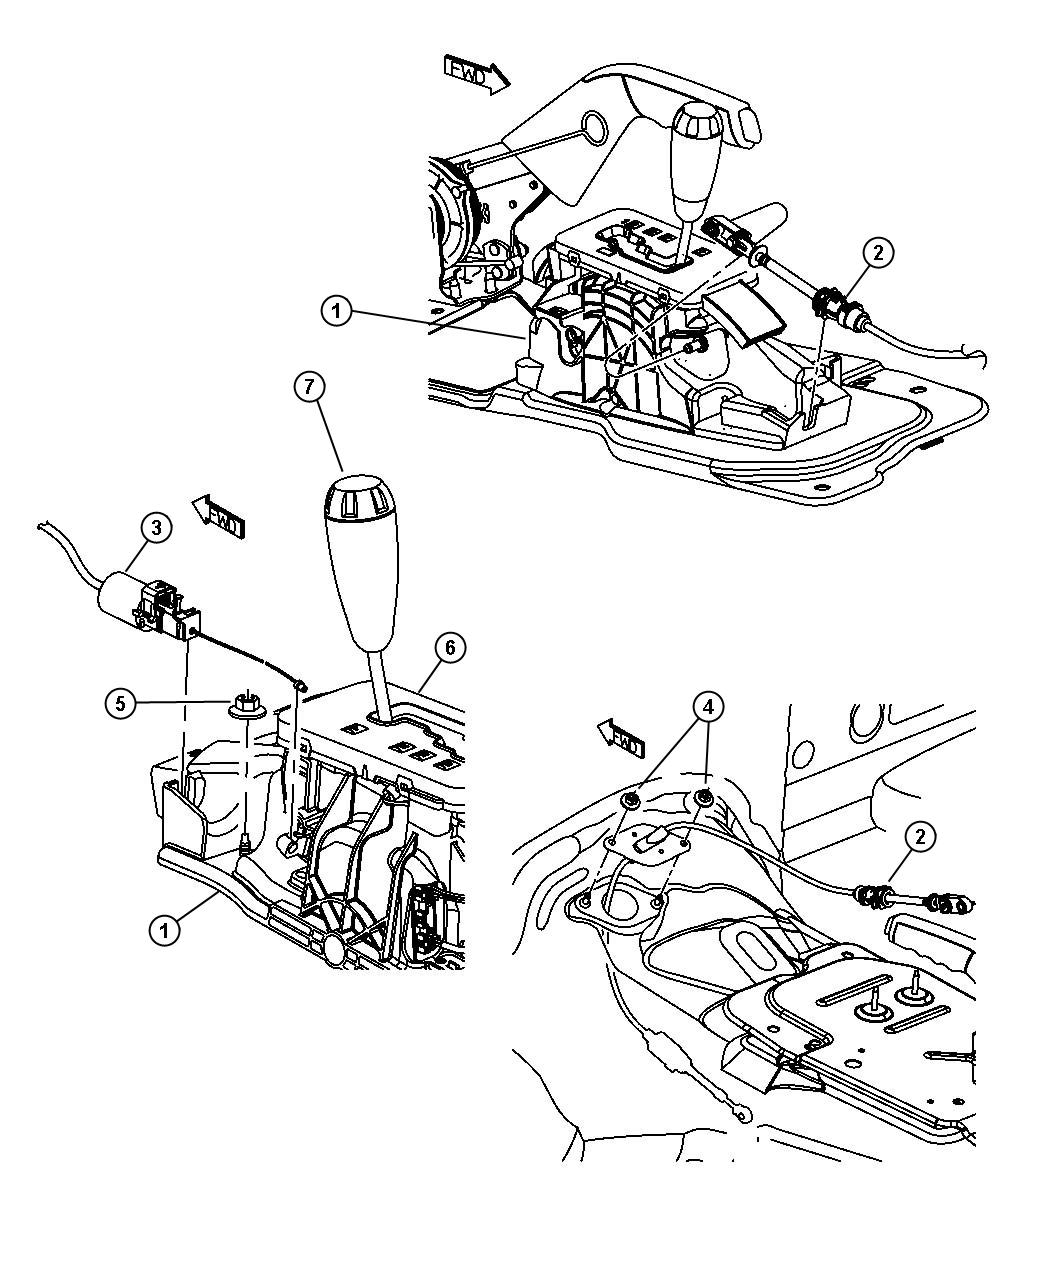 2011 dodge nitro engine diagrams